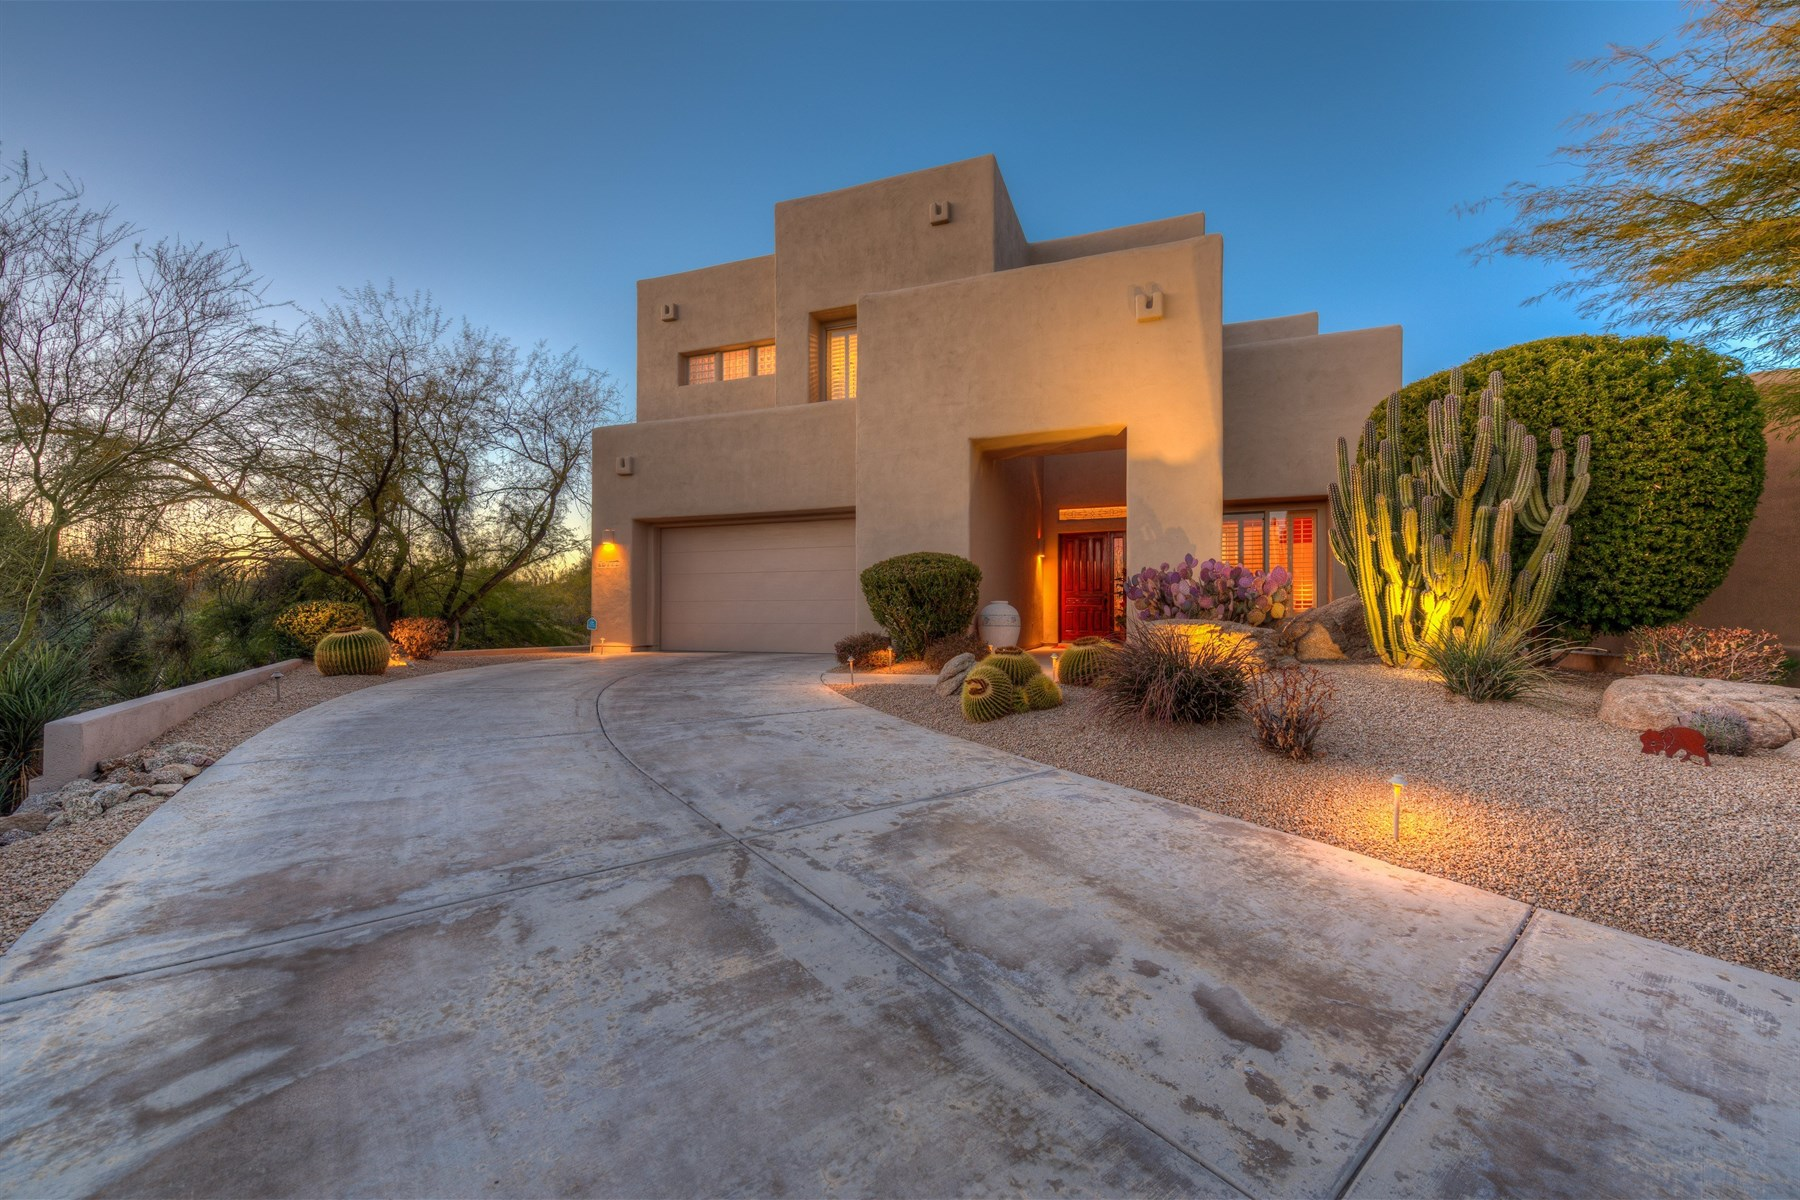 Villa per Vendita alle ore Immaculate territorial-inspired home 10772 E Running Deer Trail Scottsdale, Arizona, 85262 Stati Uniti